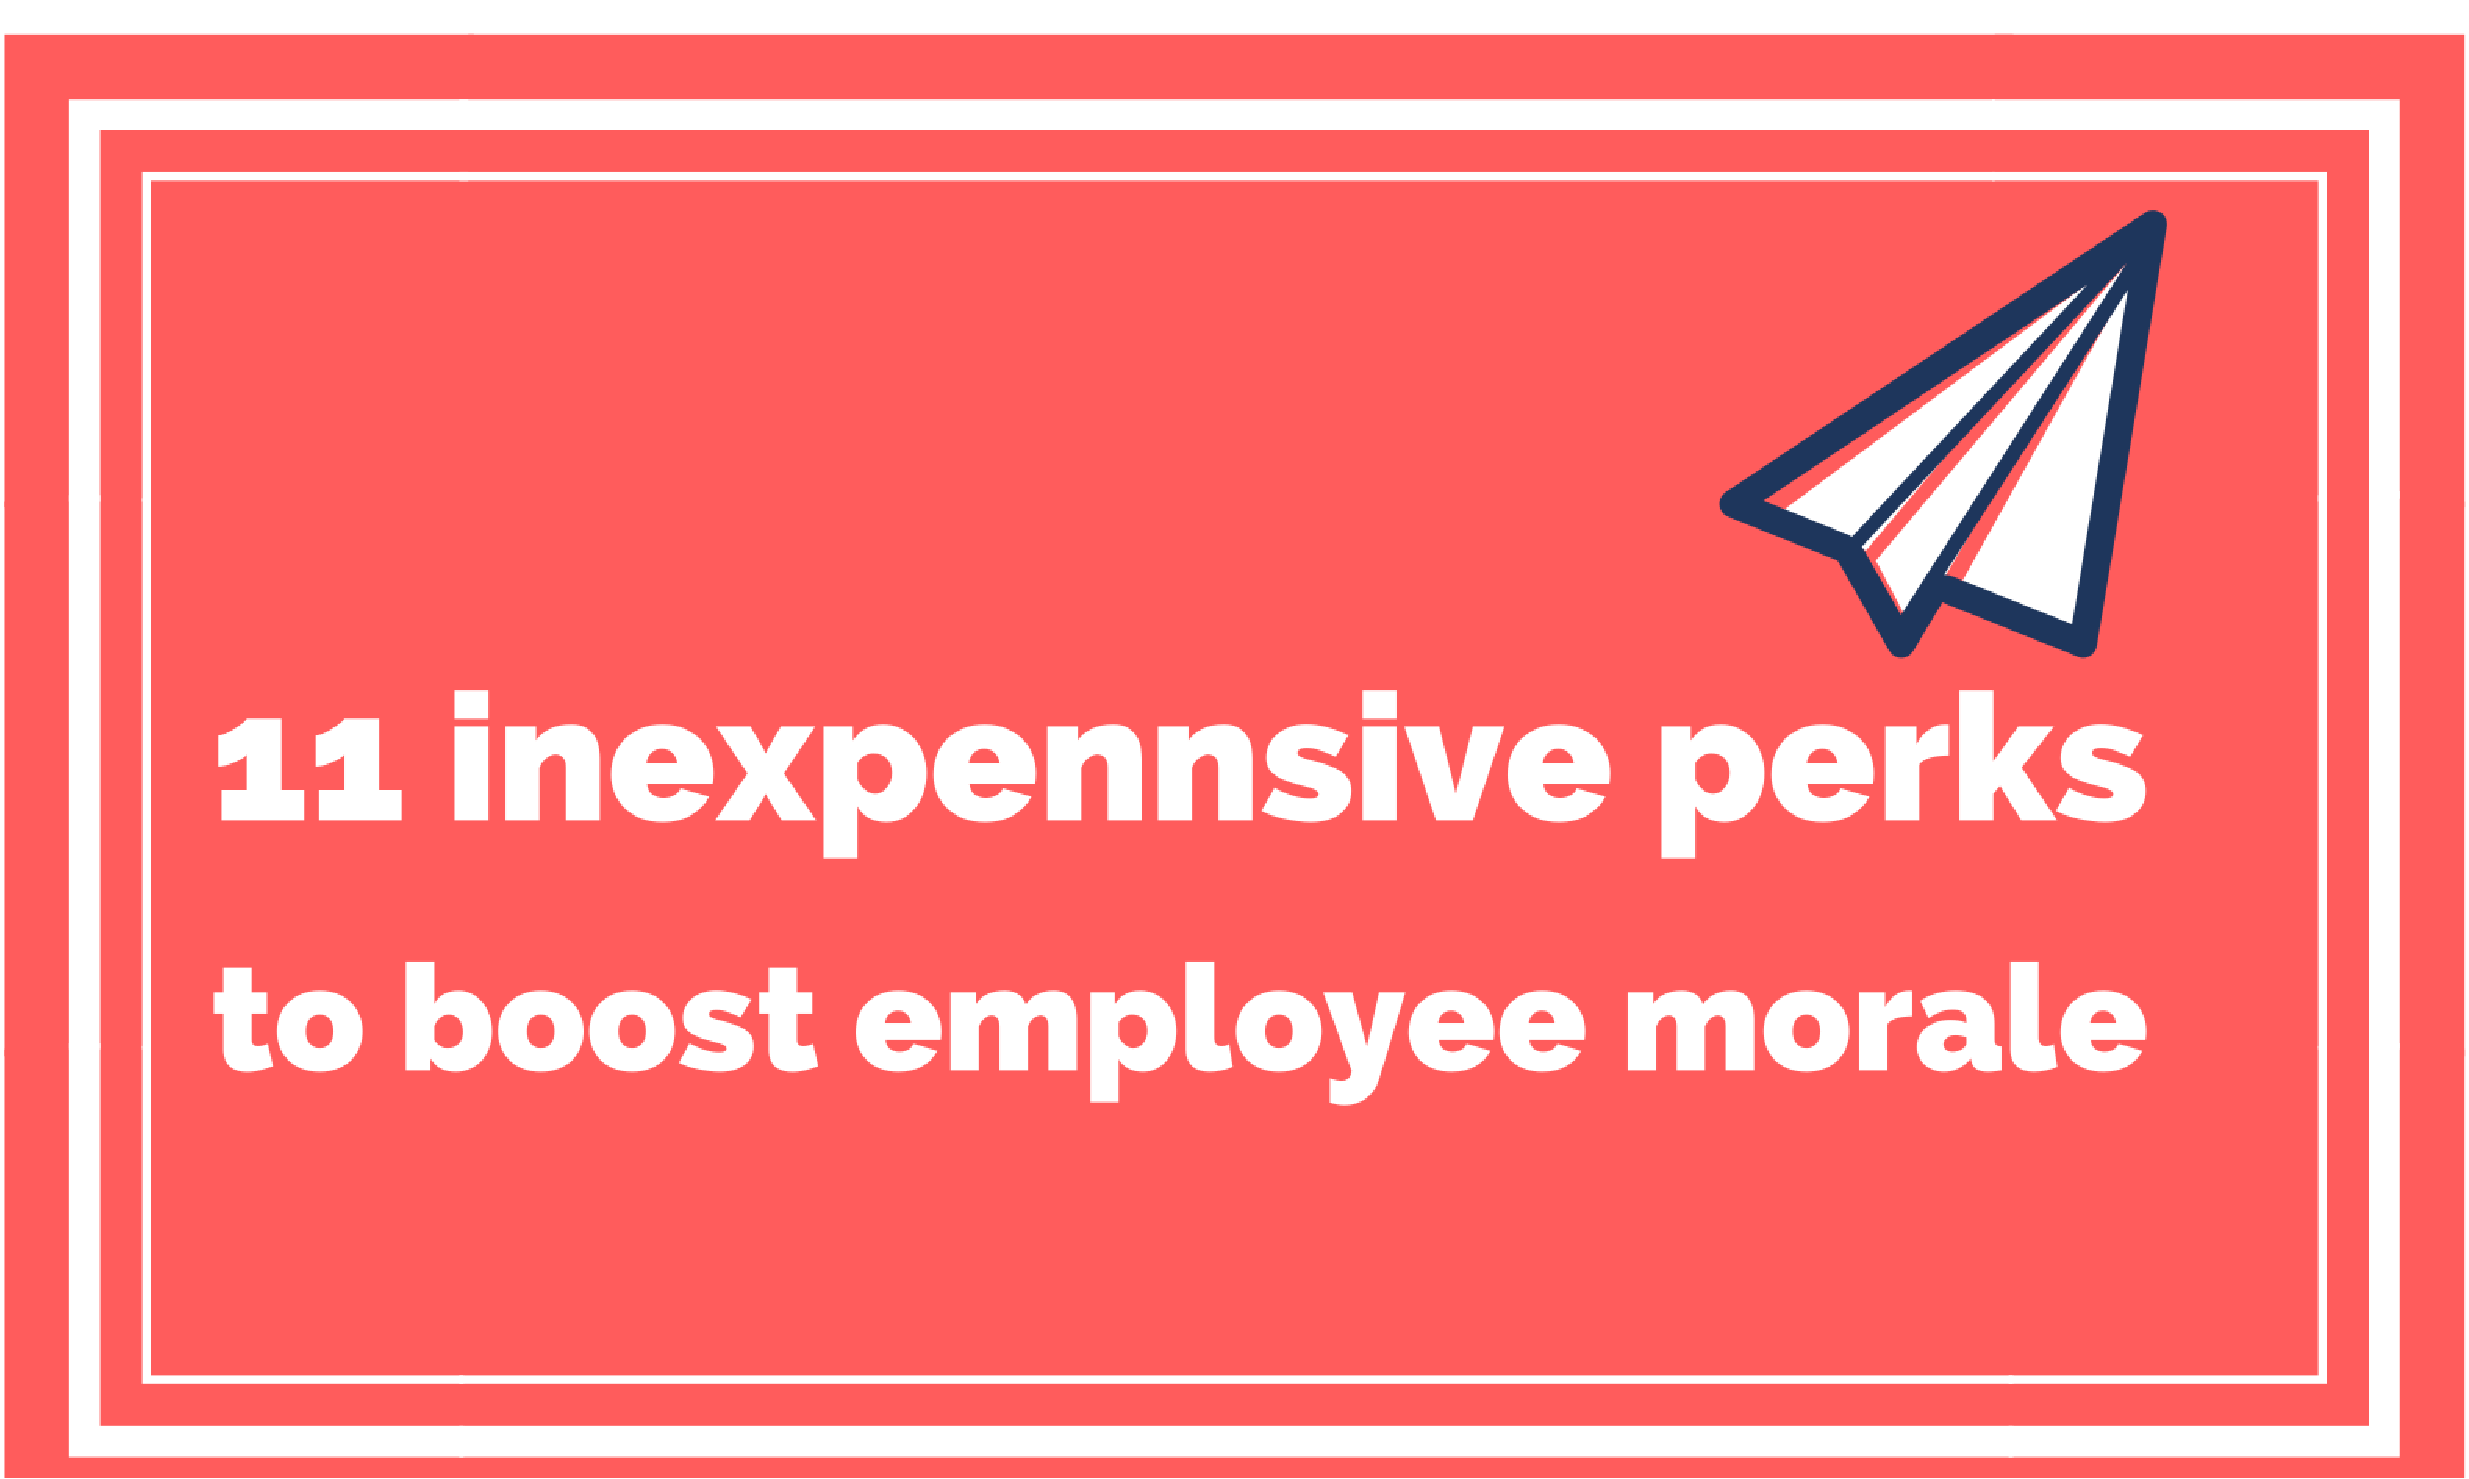 11 Inexpensive Perks to Boost Employee Morale